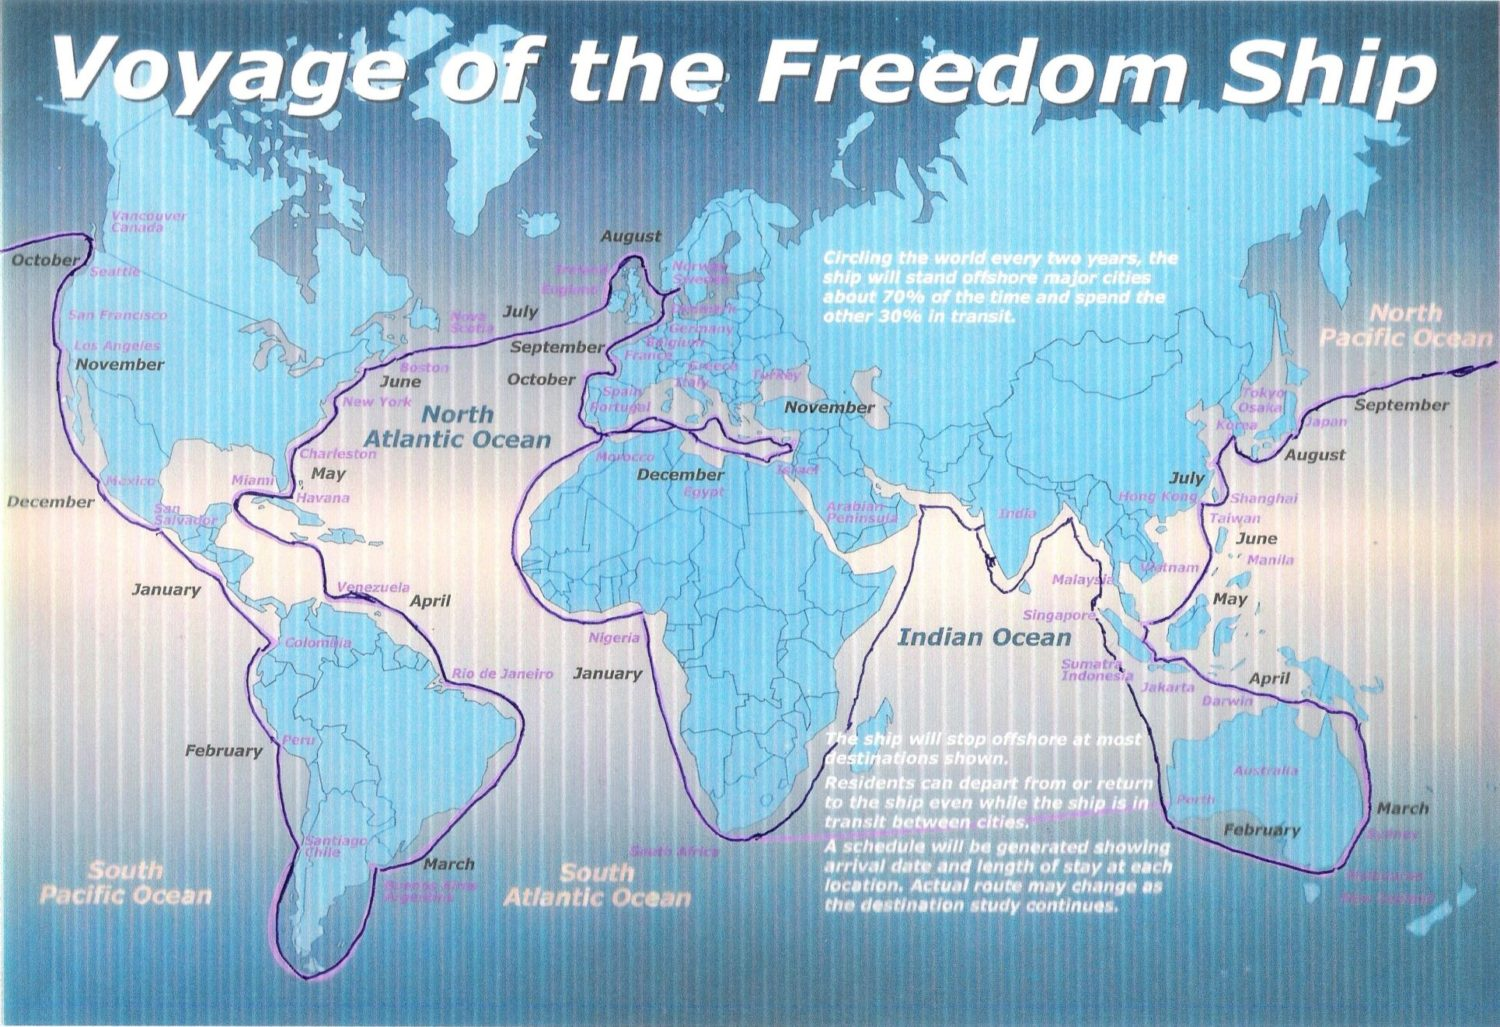 Worldwide Voyage FreedomShip